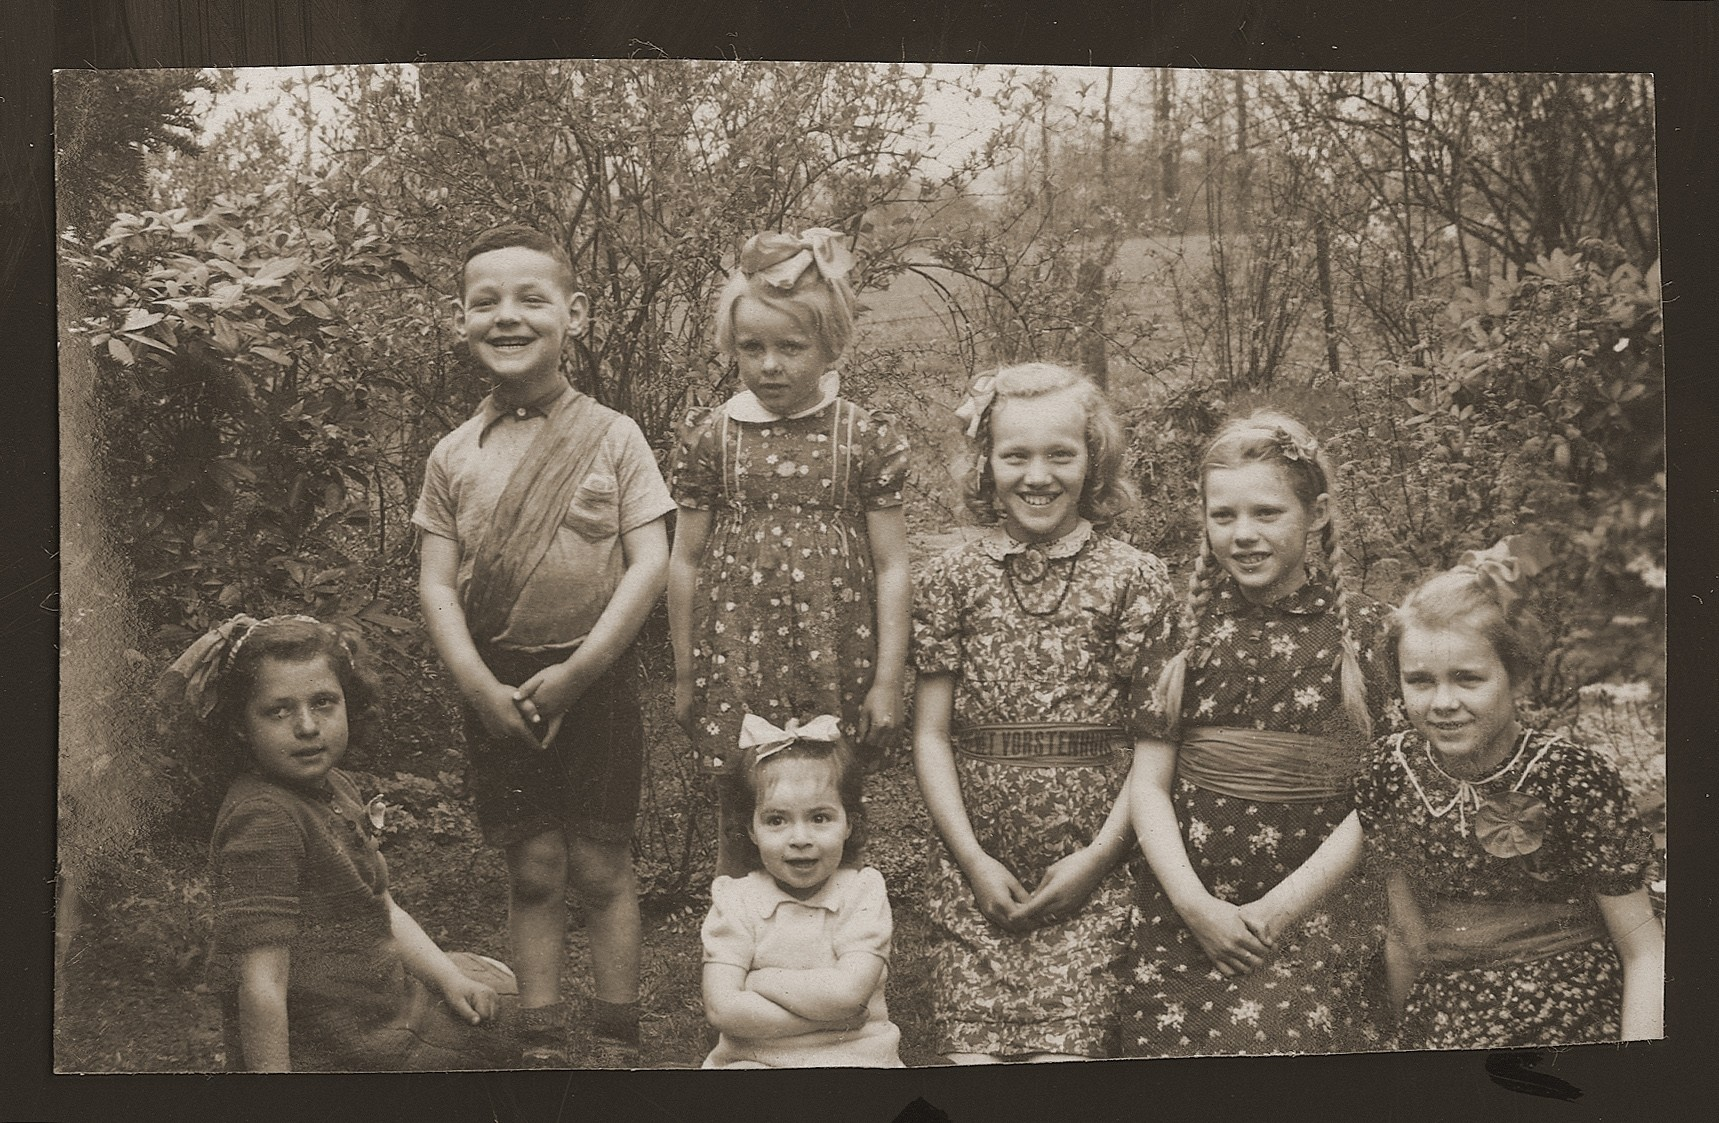 Jewish children who had been in hiding pose outside with Dutch children on liberation day.  Rachel Kats is in the center.